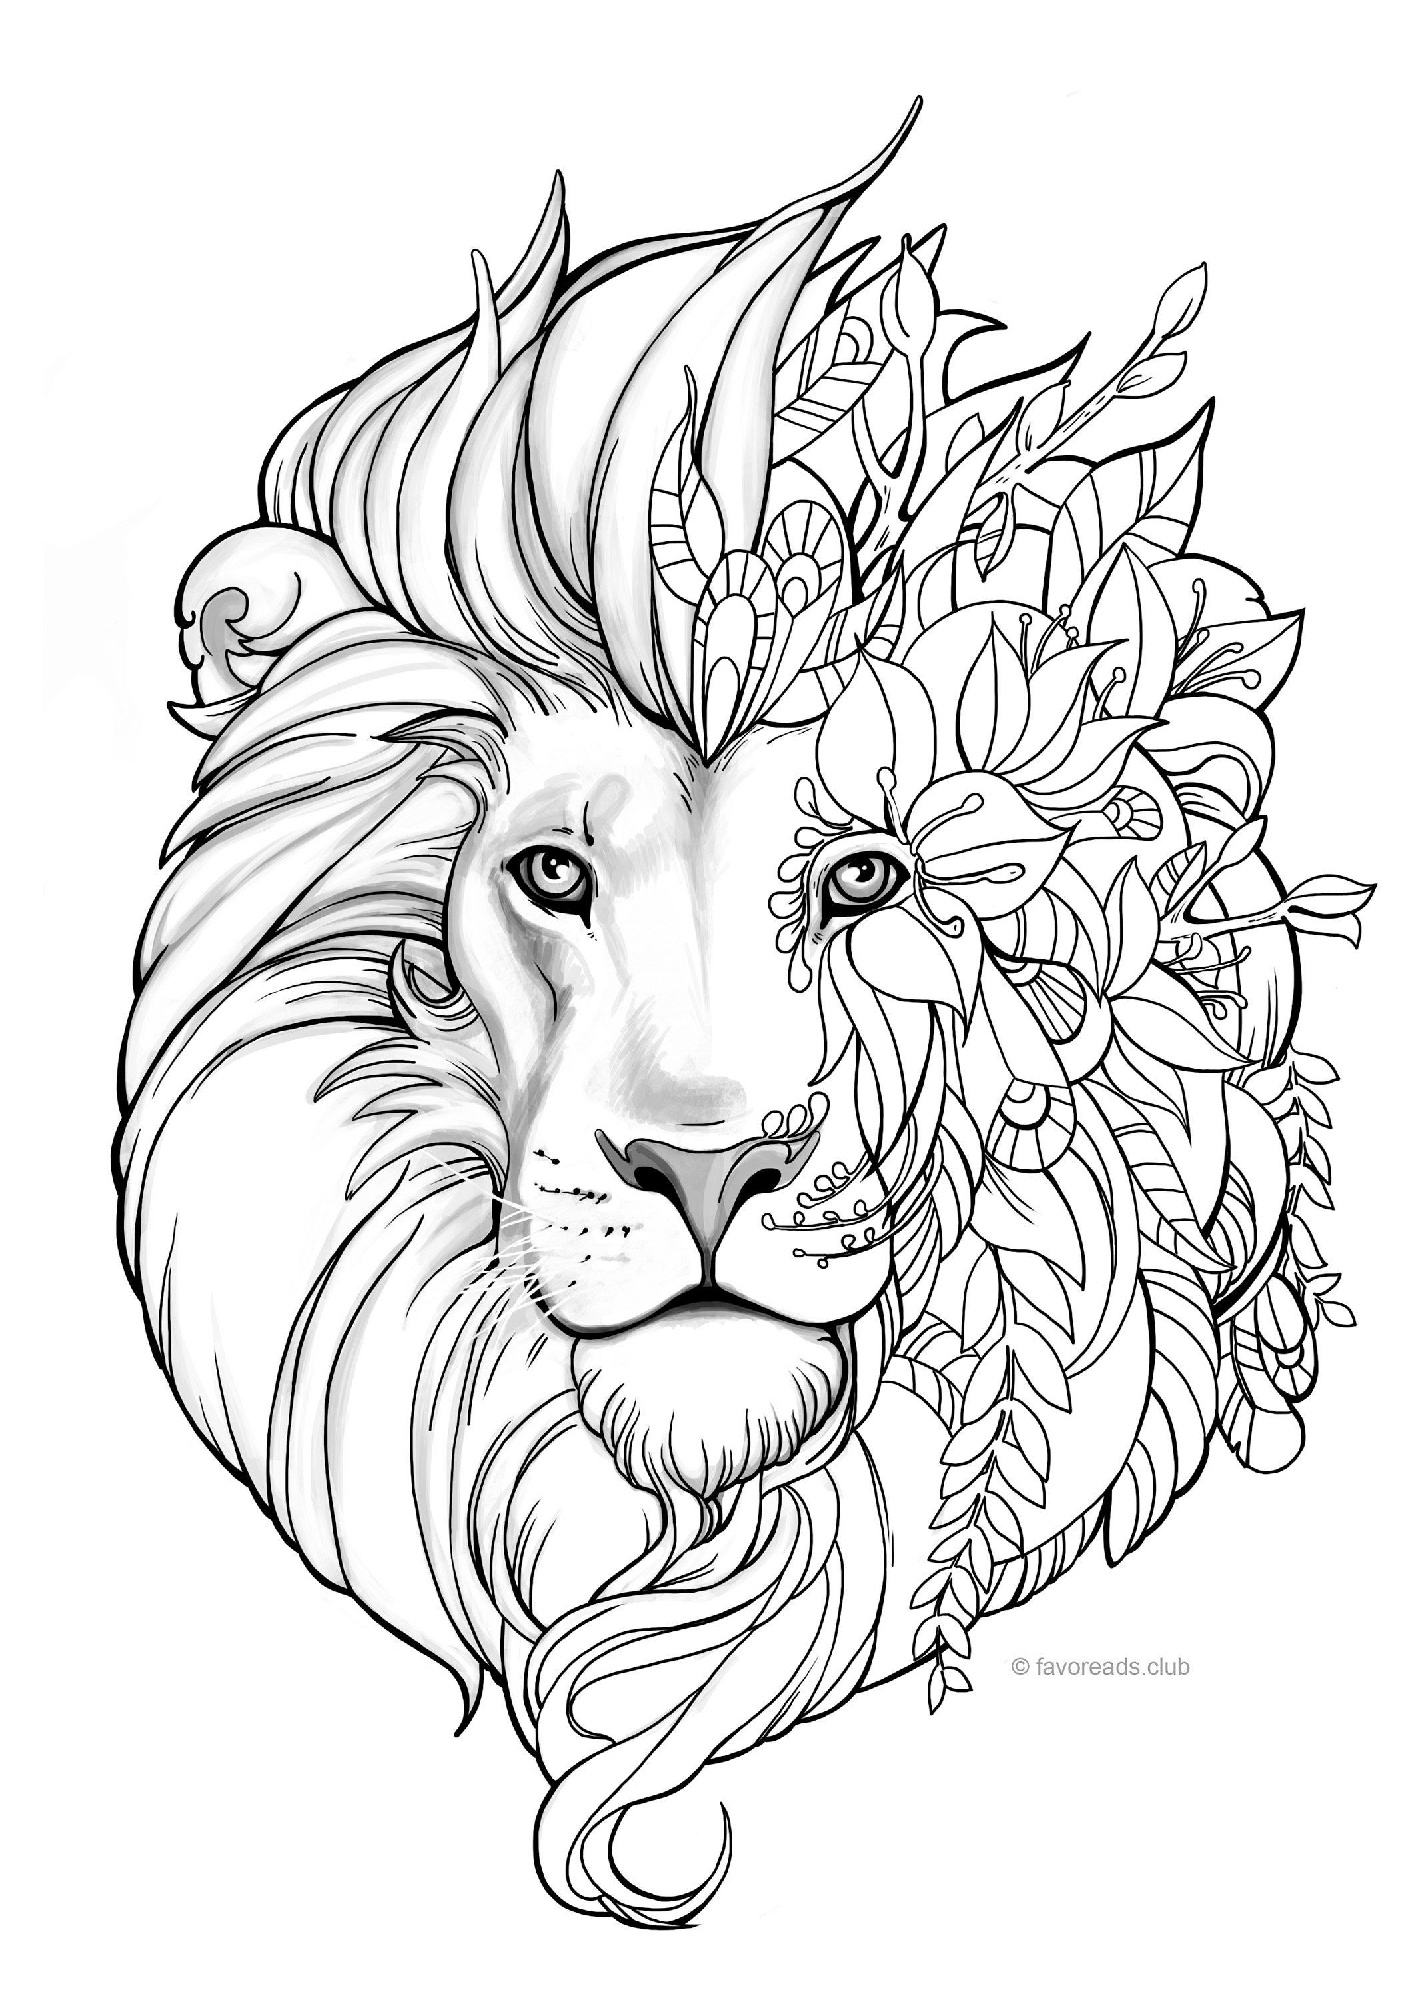 picture of a lion to color mandala lion adult coloring pages hard to color lion pages picture a color to lion of